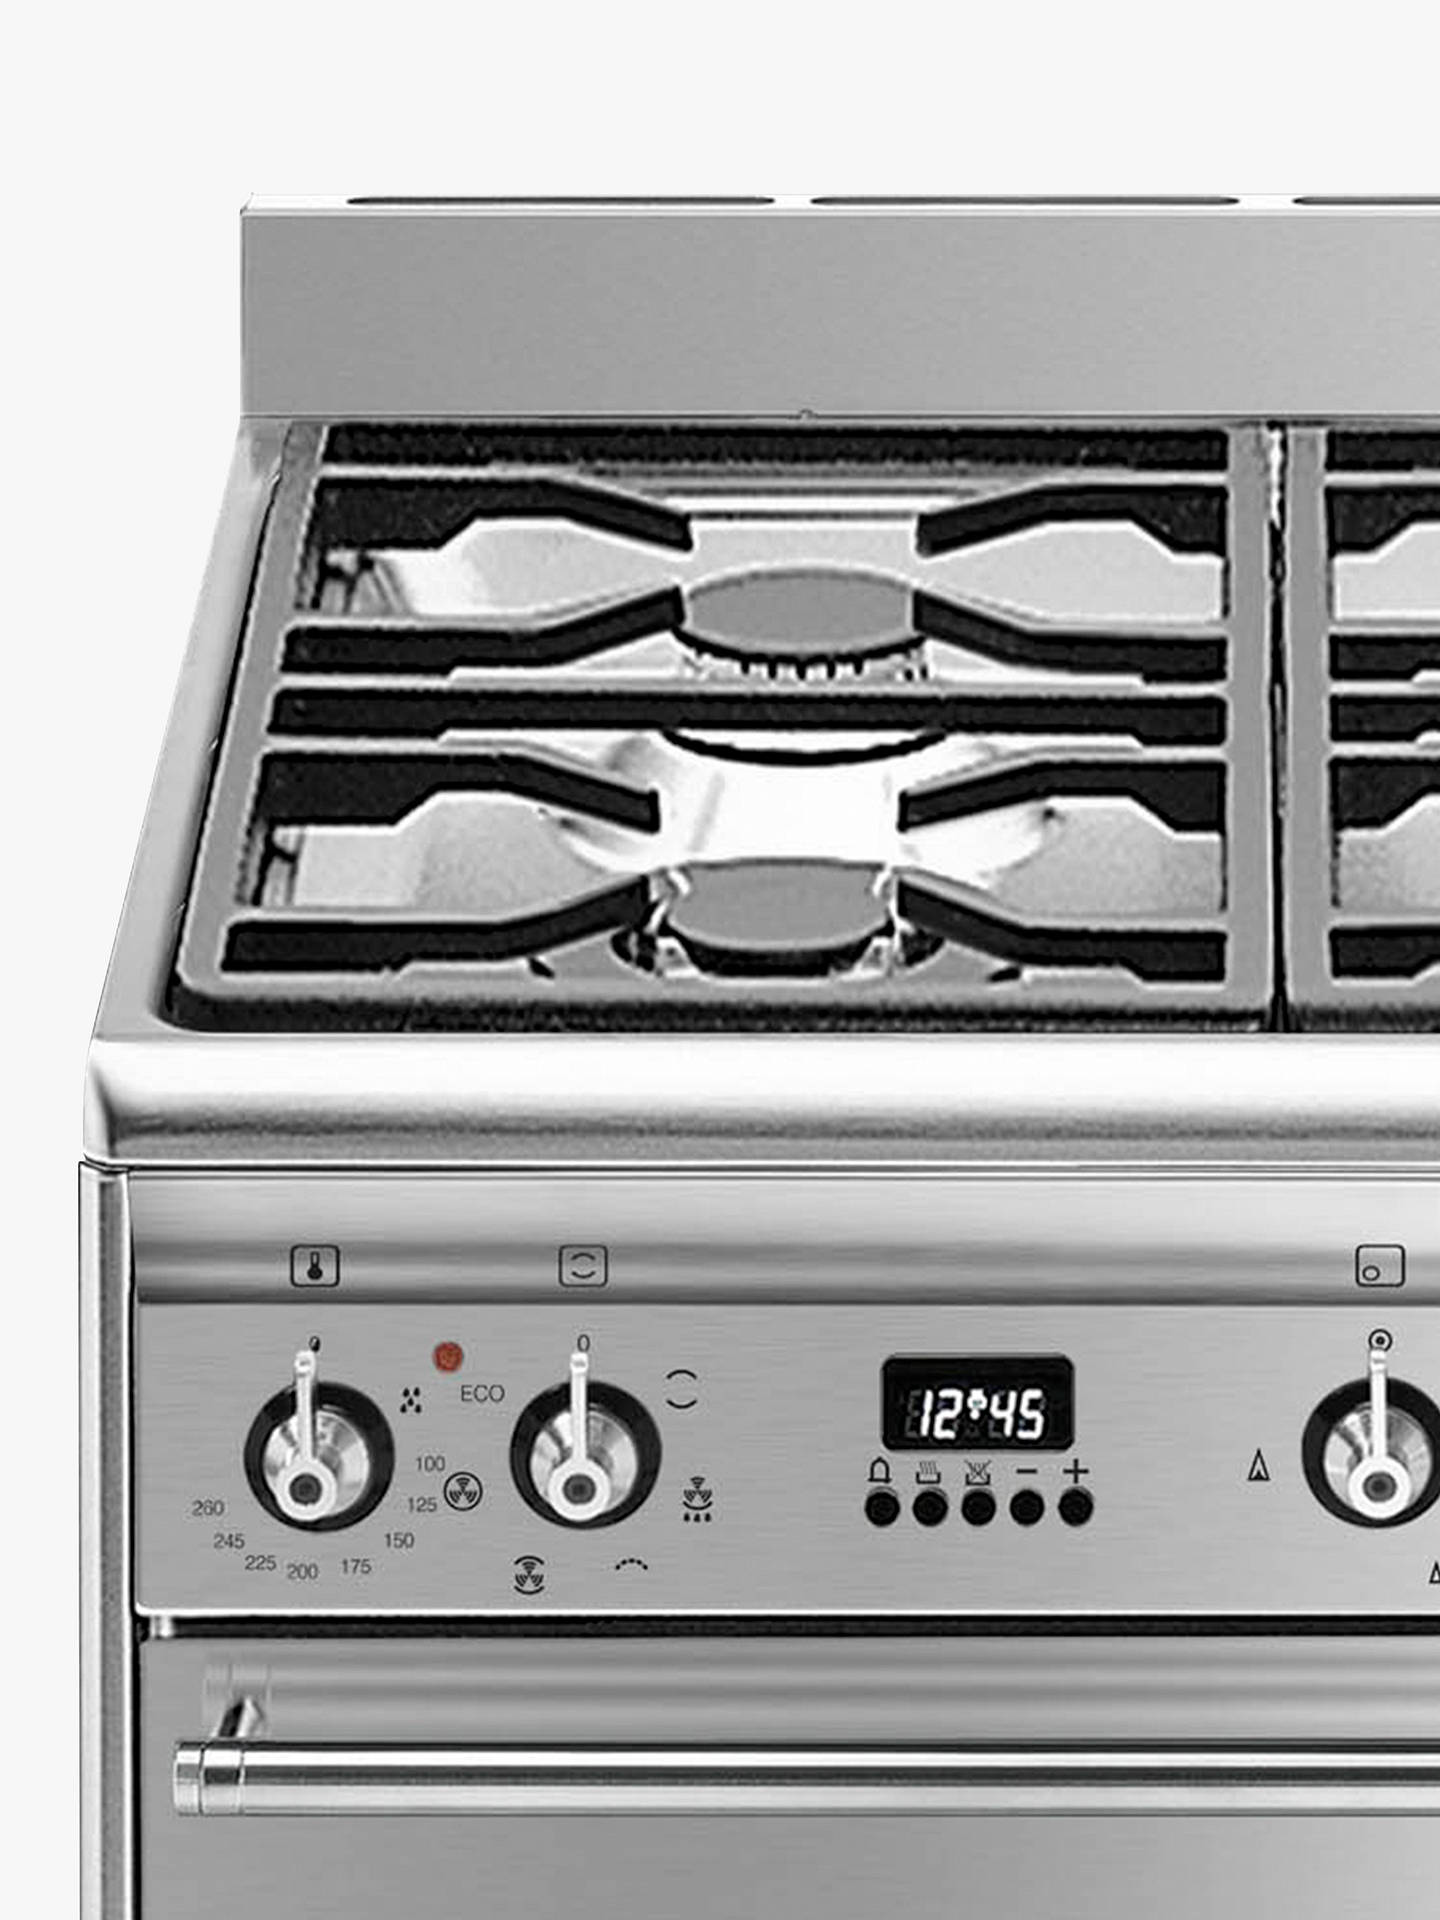 Buy Smeg SUK61MX9 Multifunctional Dual Fuel Cooker, Stainless Steel Online at johnlewis.com